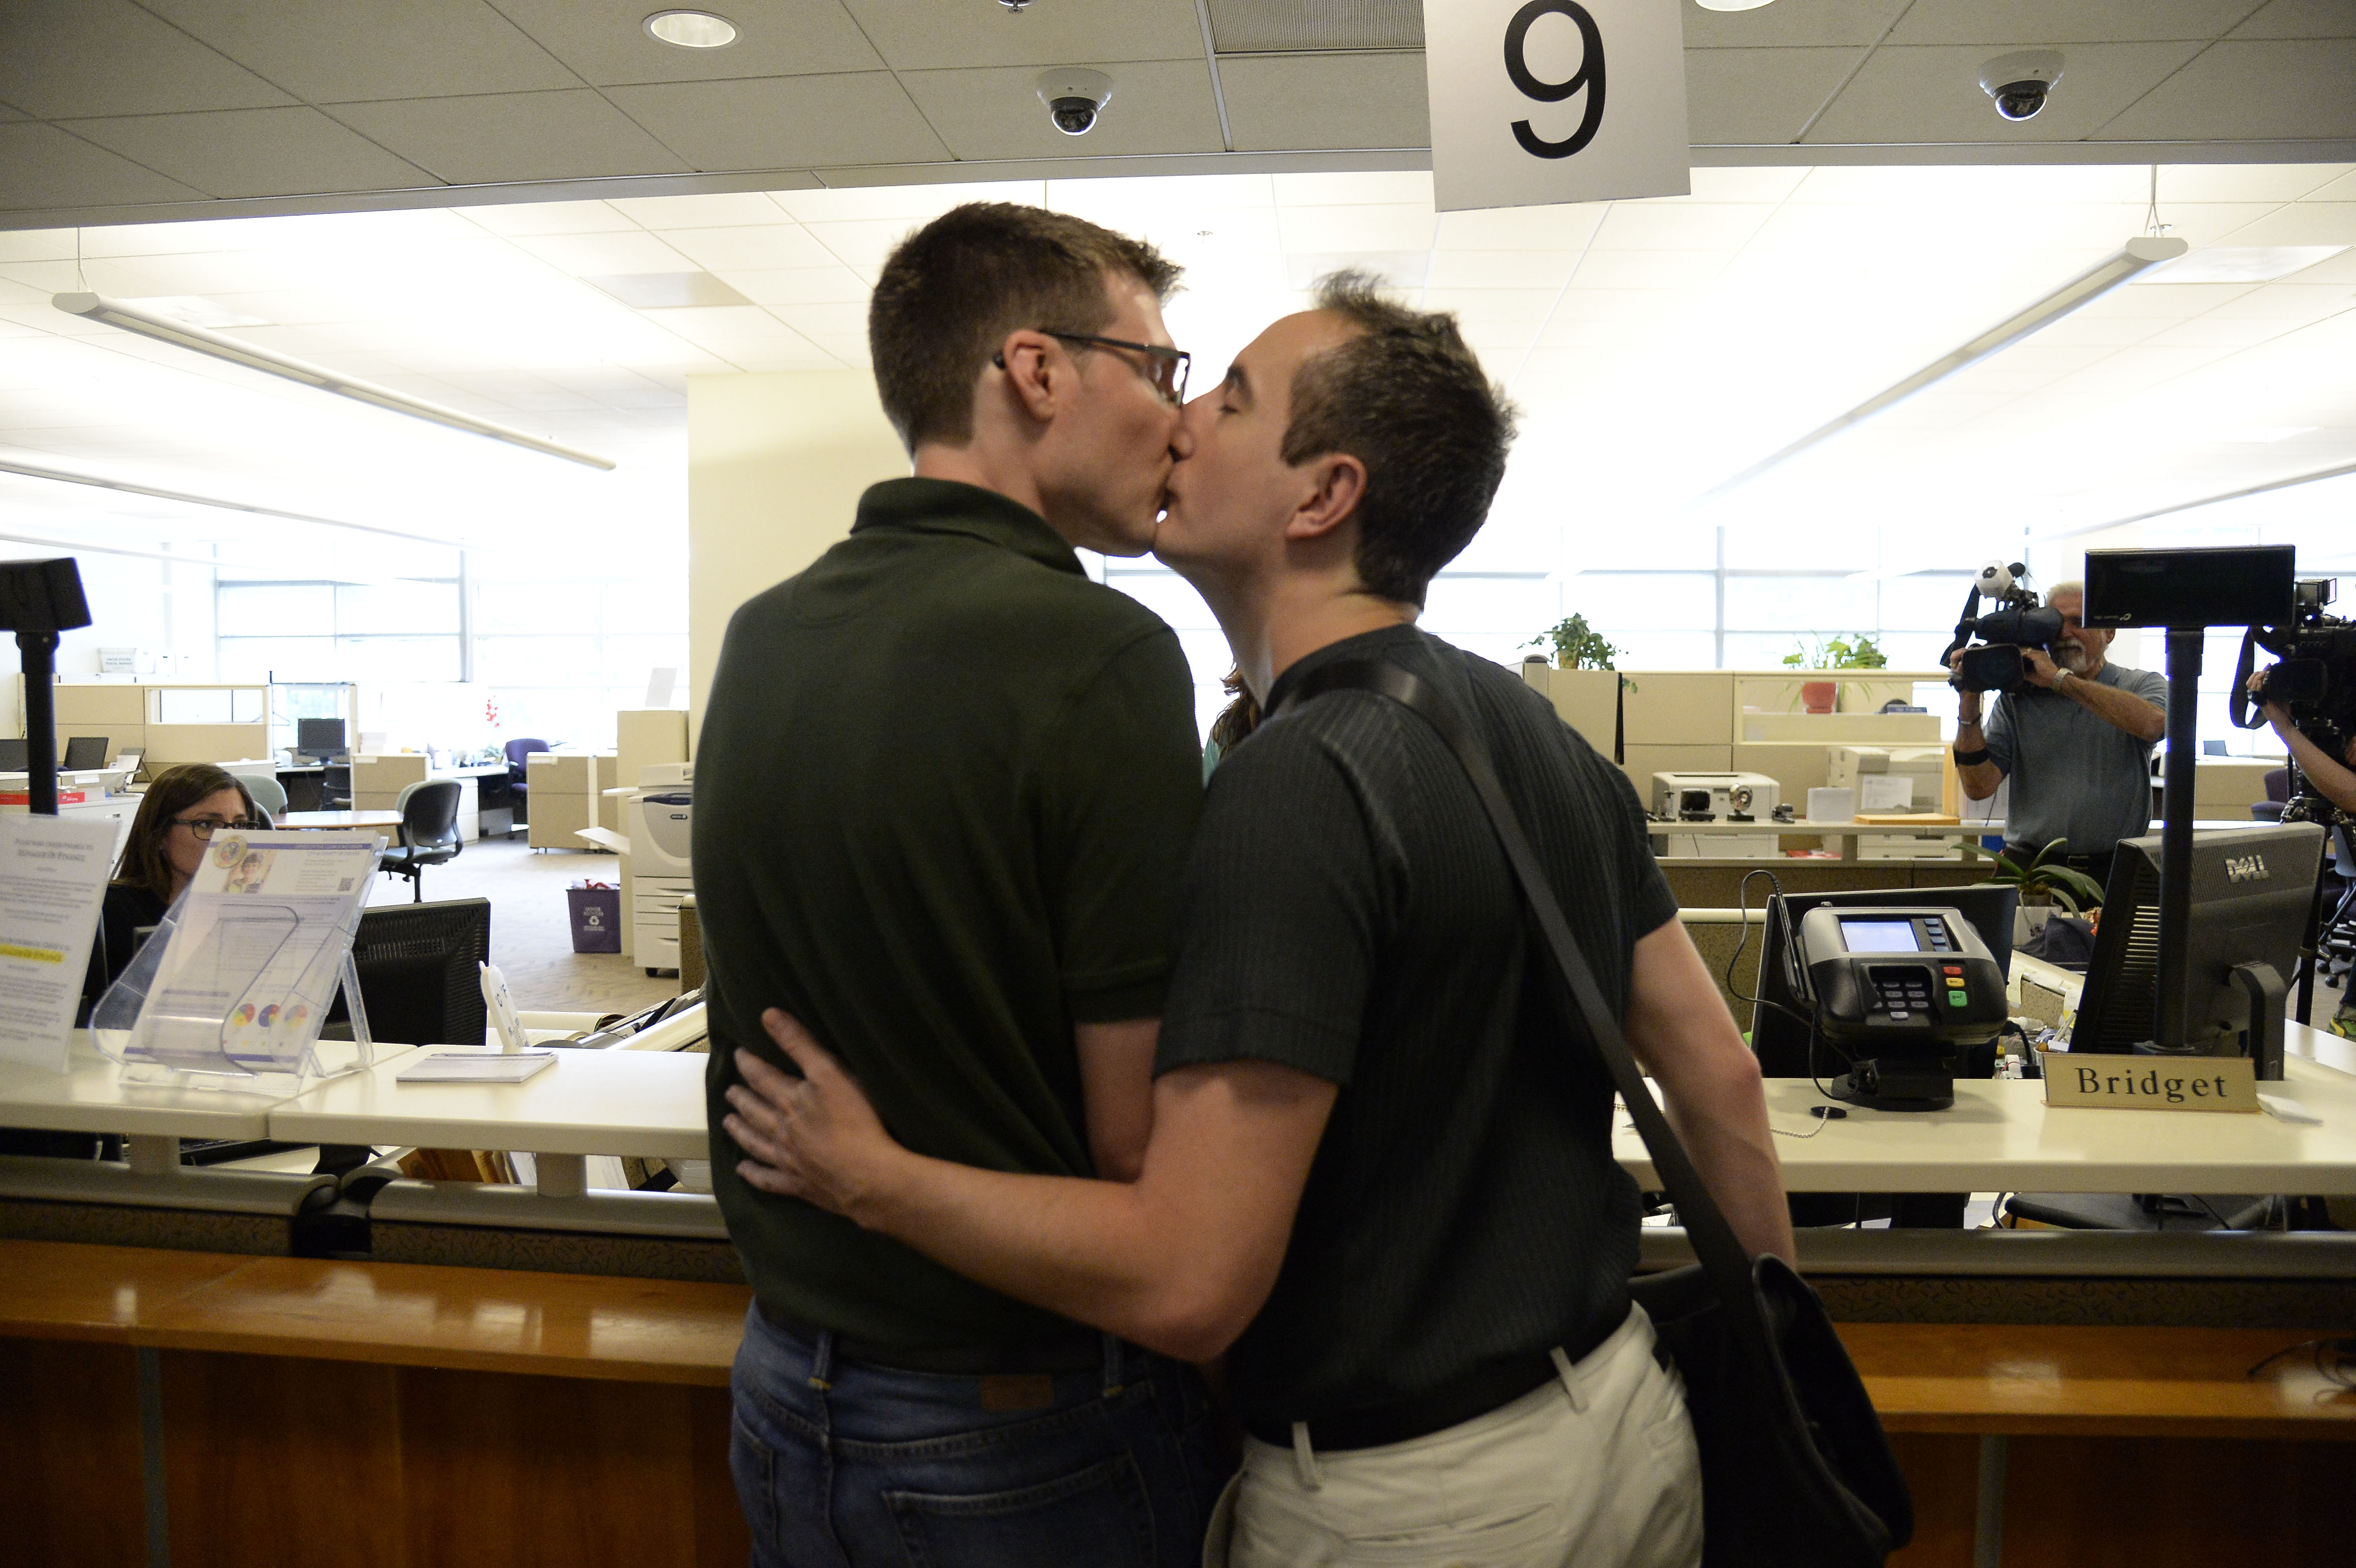 Jason Woodrich (L) and Ben Hauth share a kiss after signing their marriage license at the Denver County clerk's office where they began issuing same sex marriage licenses July 10, 2014.